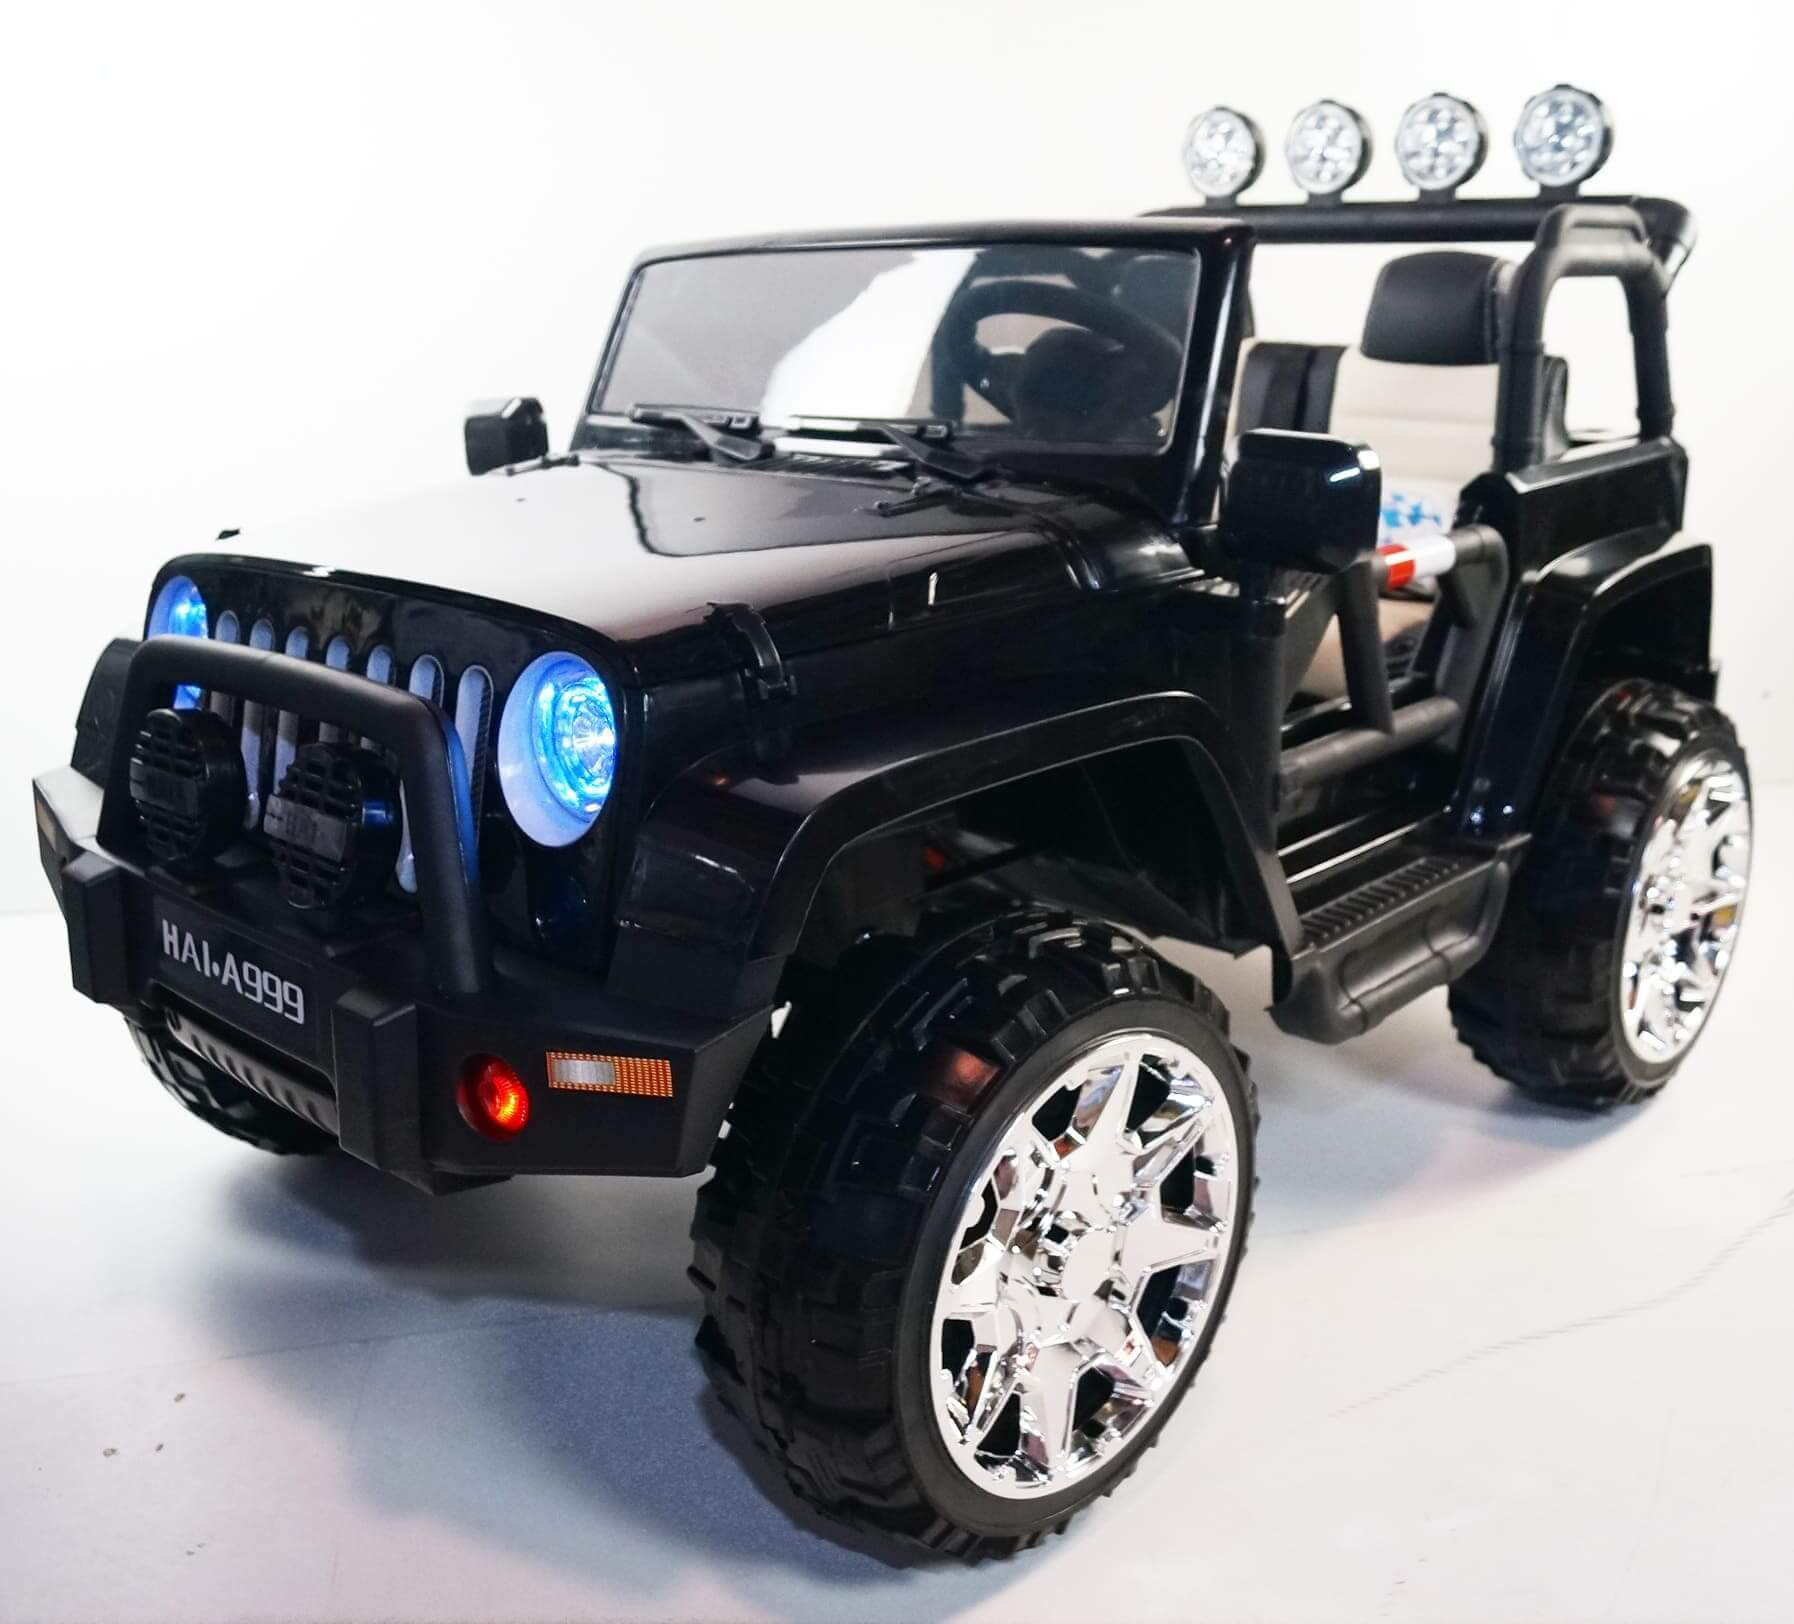 CLASSIC 2-Seater JEEP WRANGLER INSPIRED 24V RIDE-ON KIDS CAR | BLACK Cars & SUVs Mini Motos